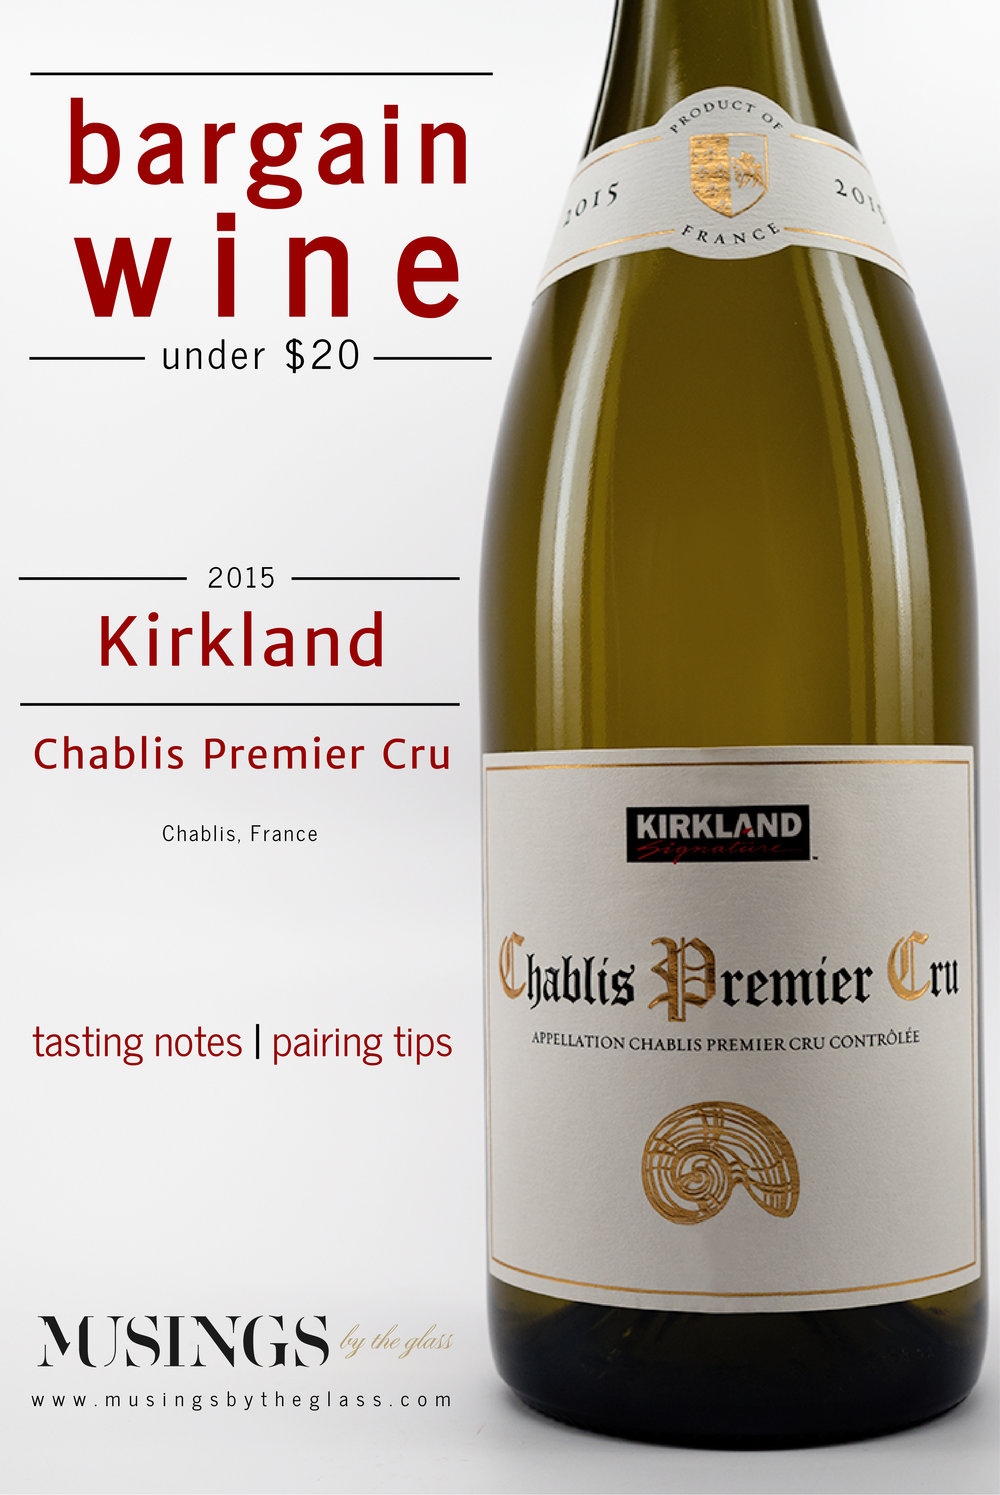 Musings by the Glass - Bargain Wines - Kirkland Signature Chardonnay, Chablis, France